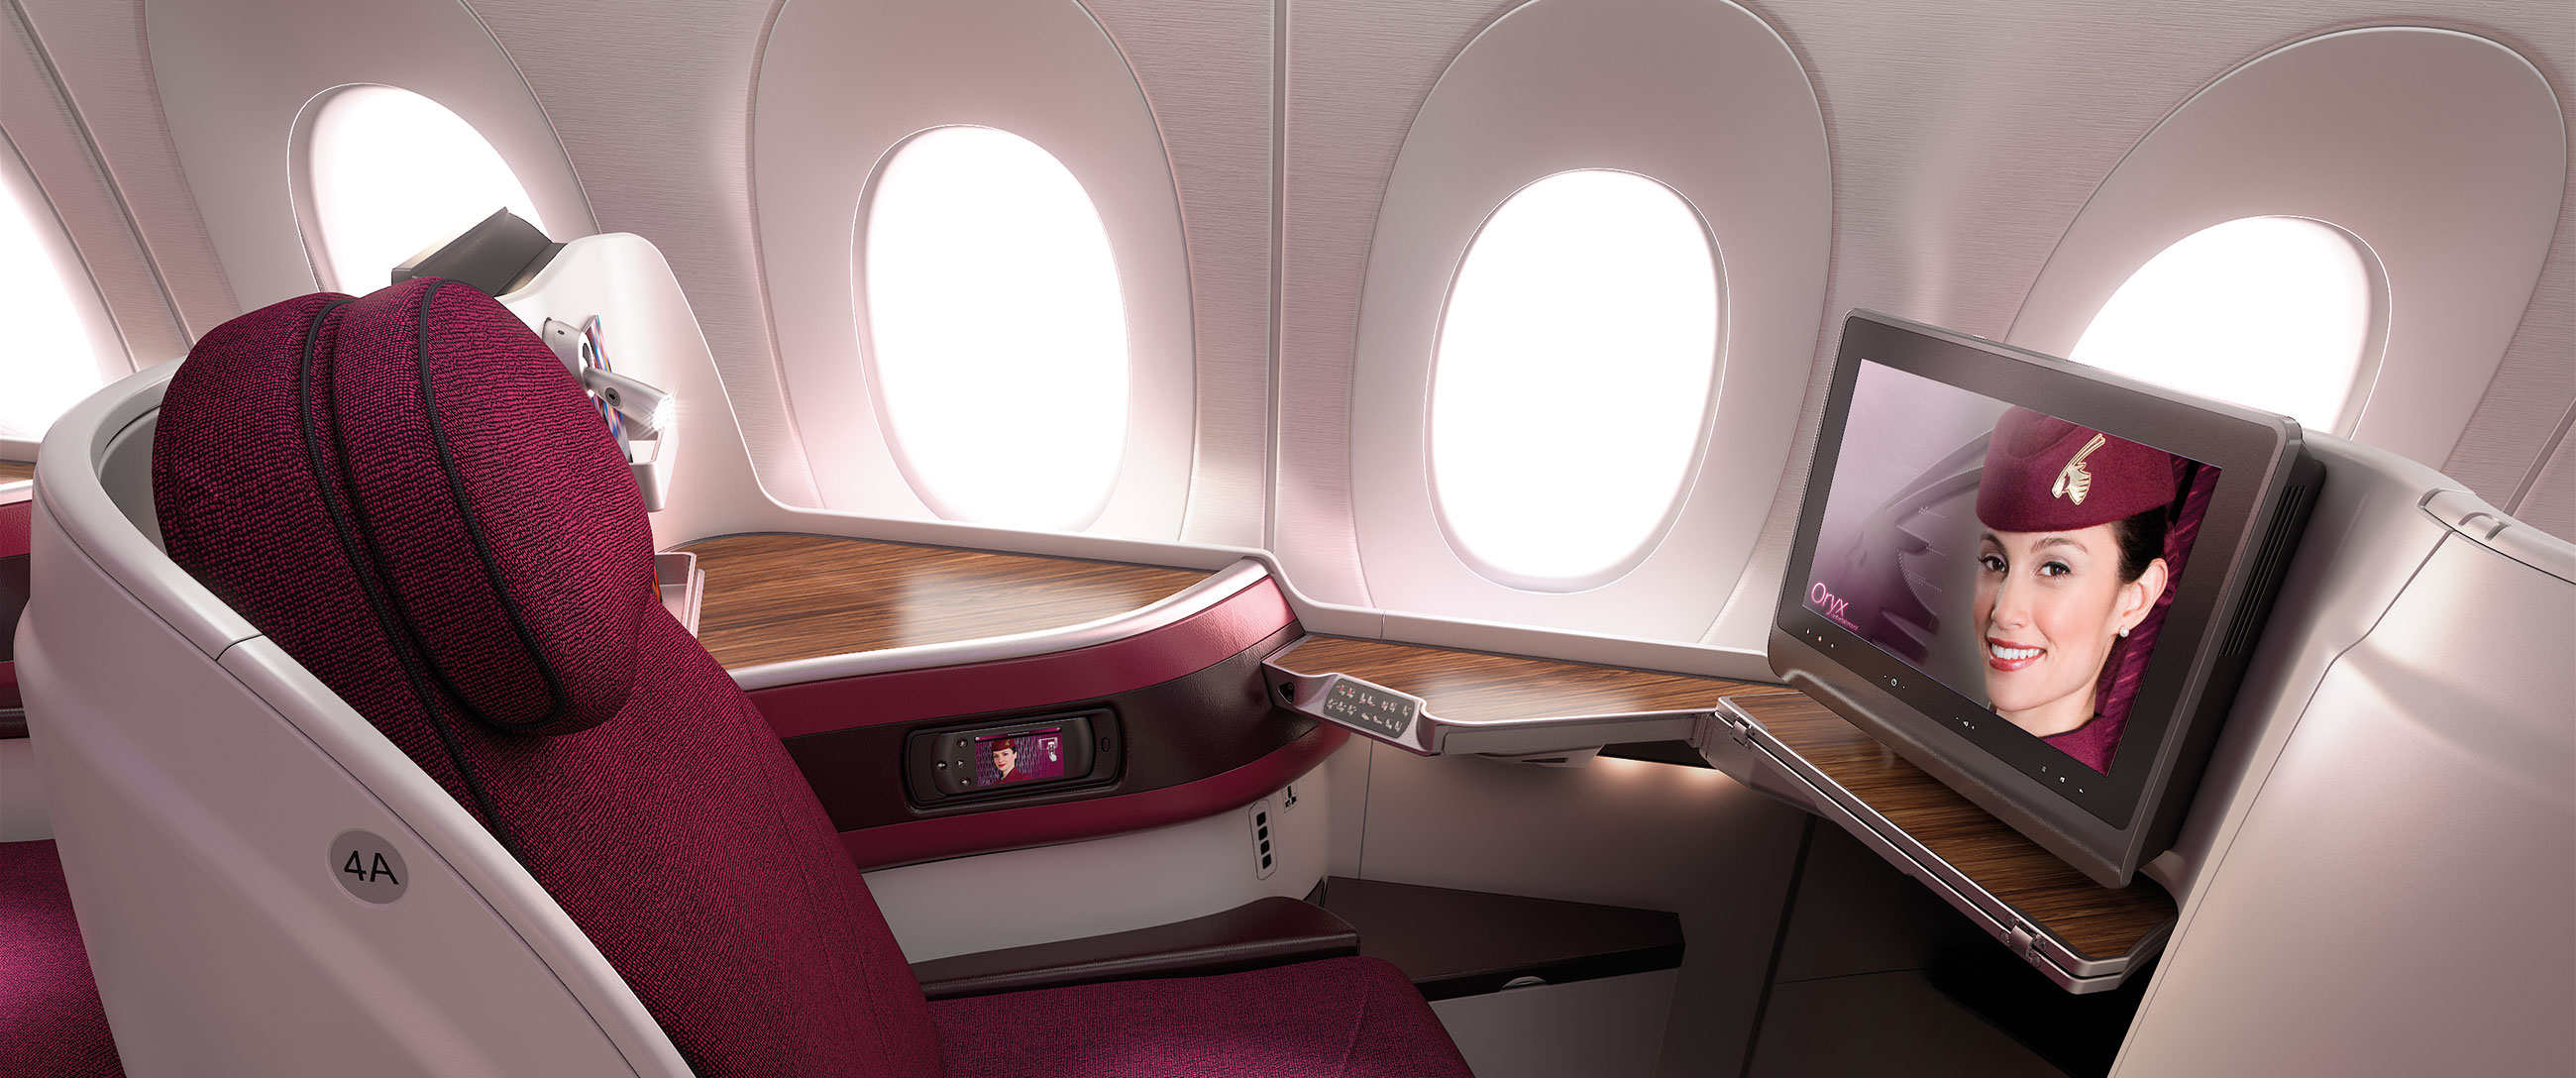 QATAR AIRWAYS WORLD'S BEST BUSINESS CLASS